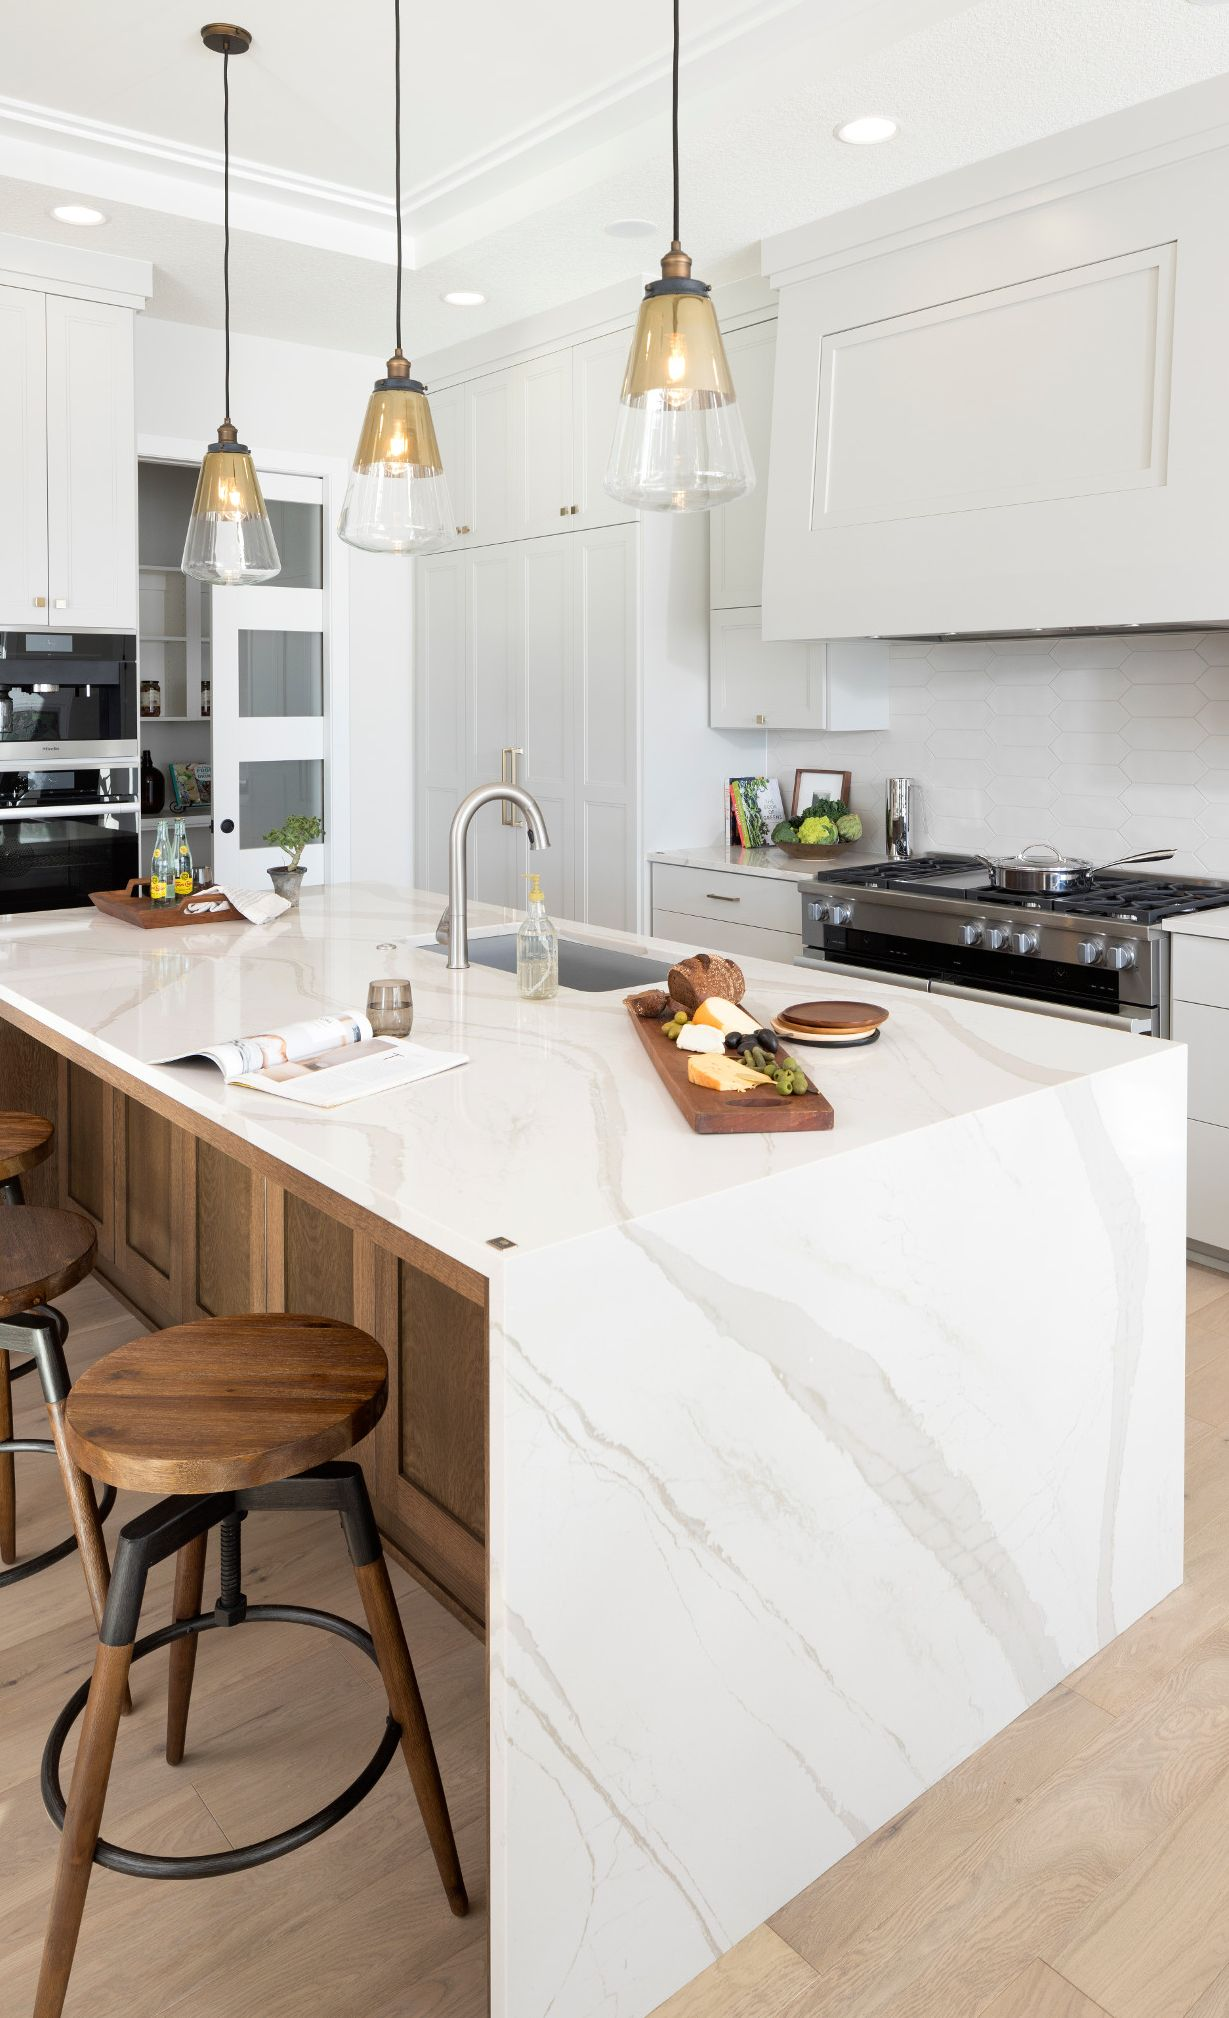 Cambria-Quartz-Countertop-Brittanicca-Warm-Kitchen